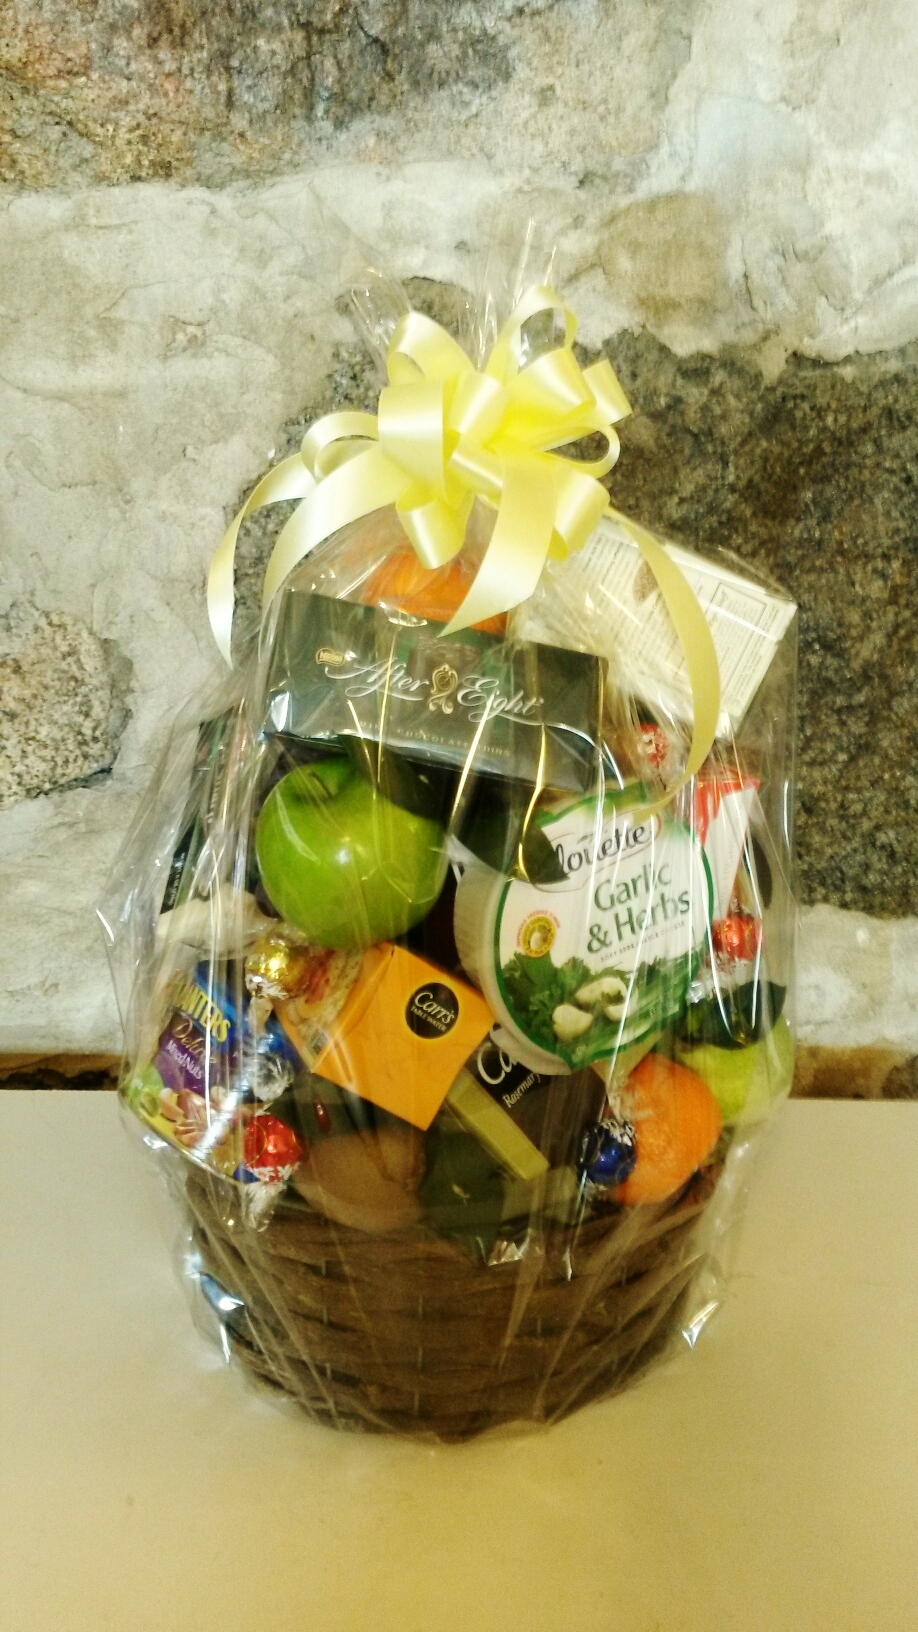 E14   $100 - $175 gourmet basket with fruit, cheese, nuts, crackers, sweets. $100 as shown.